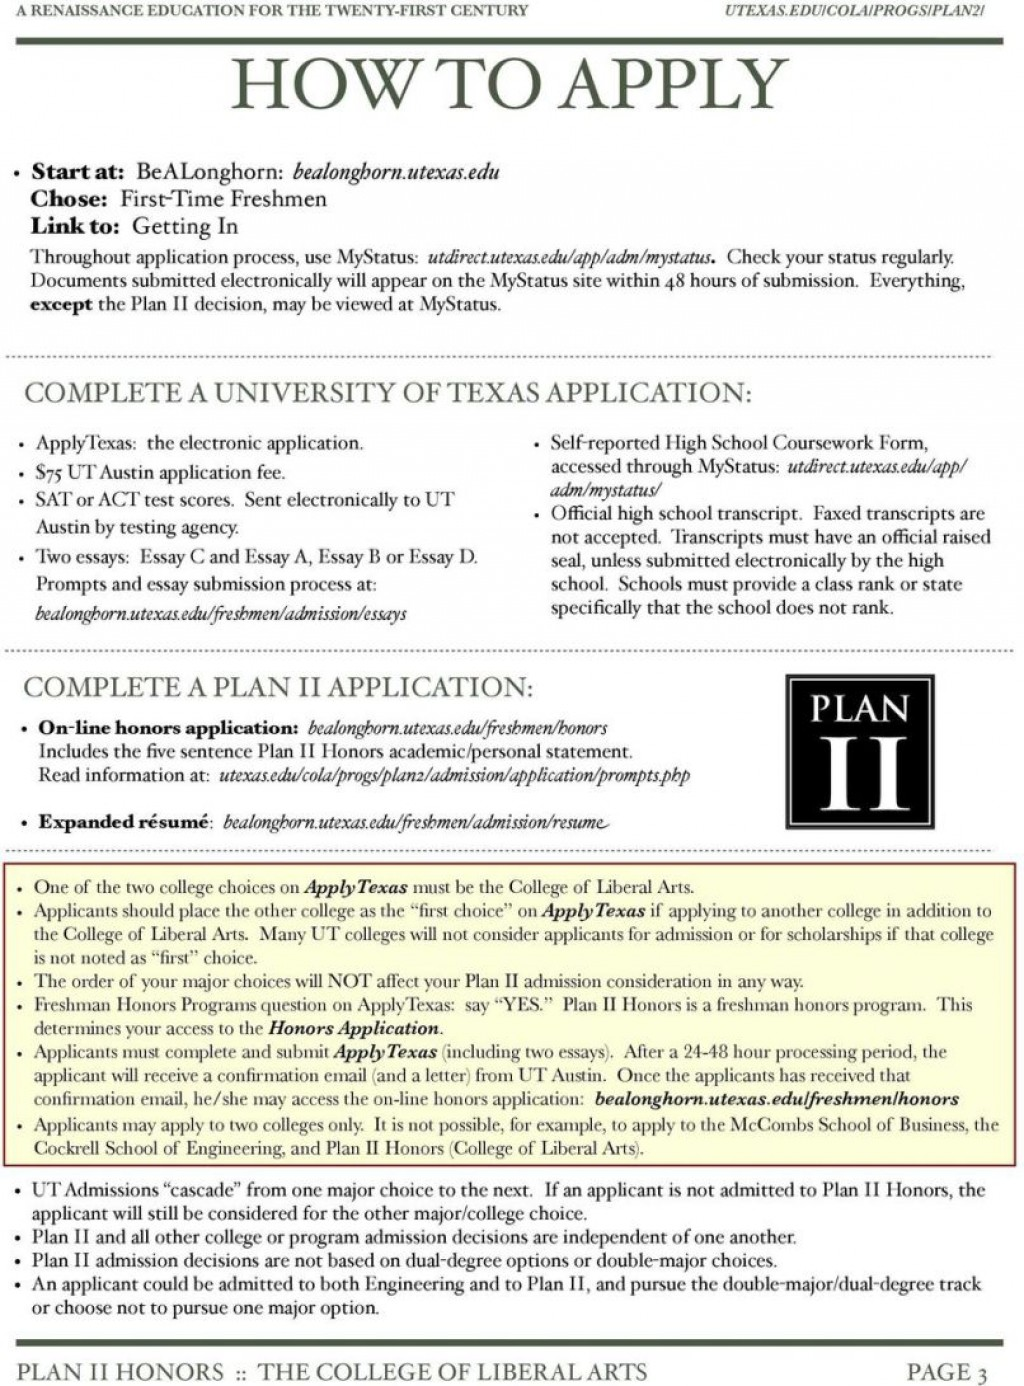 003 Applytexas Essay Prompts Poemdoc Or Apply Texas Topics P Fascinating B Examples A 2017 Large